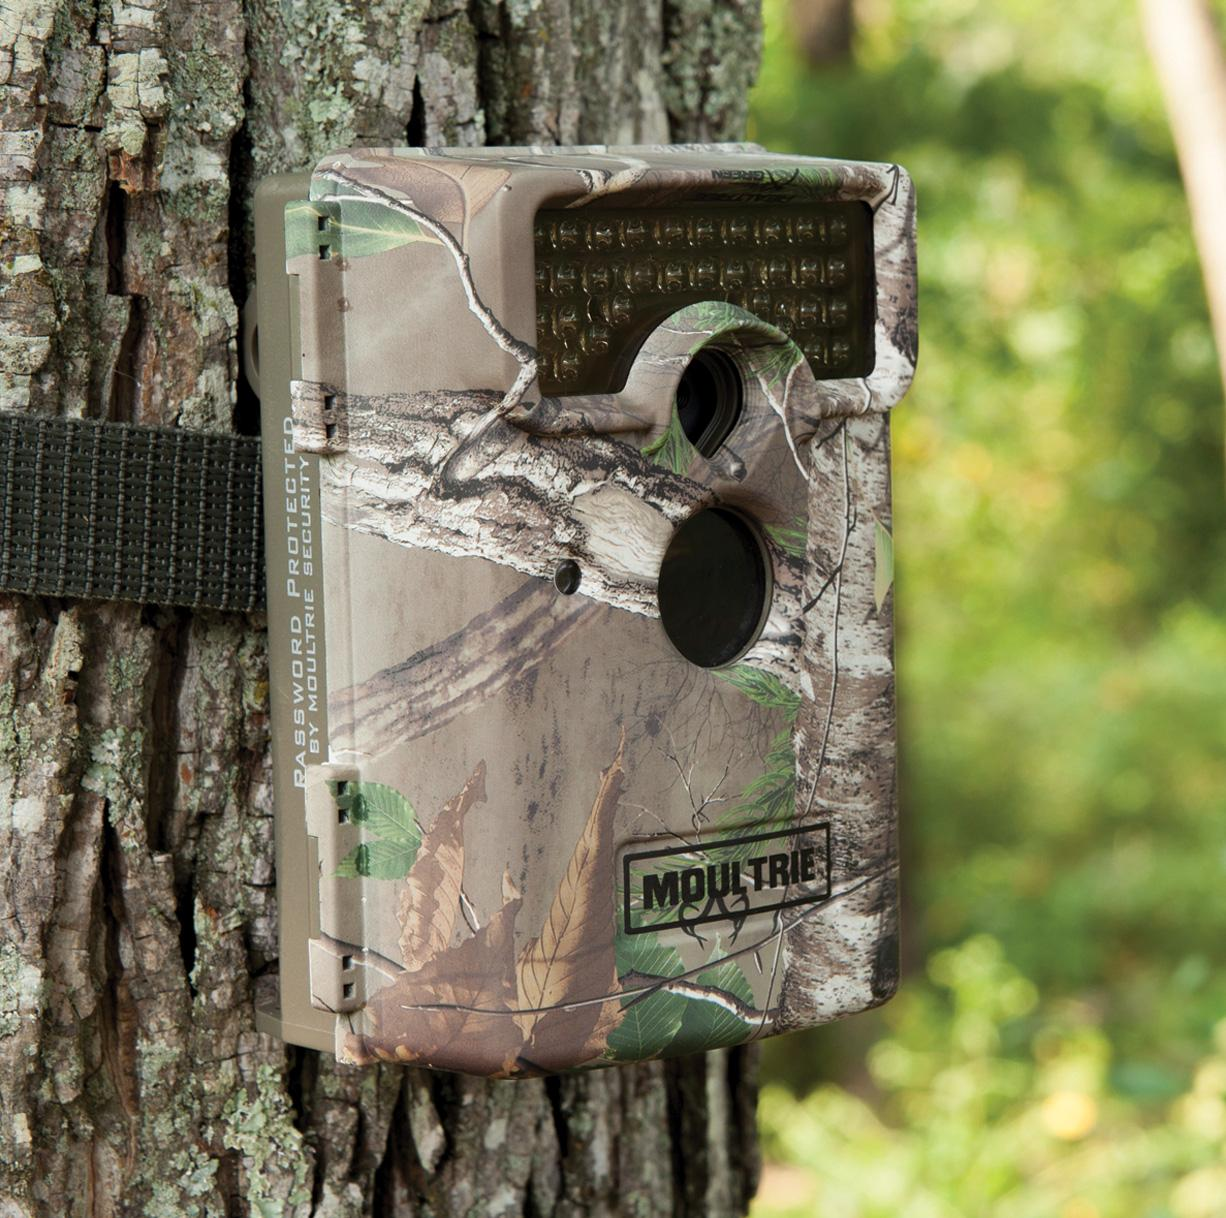 Amazon.com : Moultrie M-1100i Game Camera : Sports & Outdoors